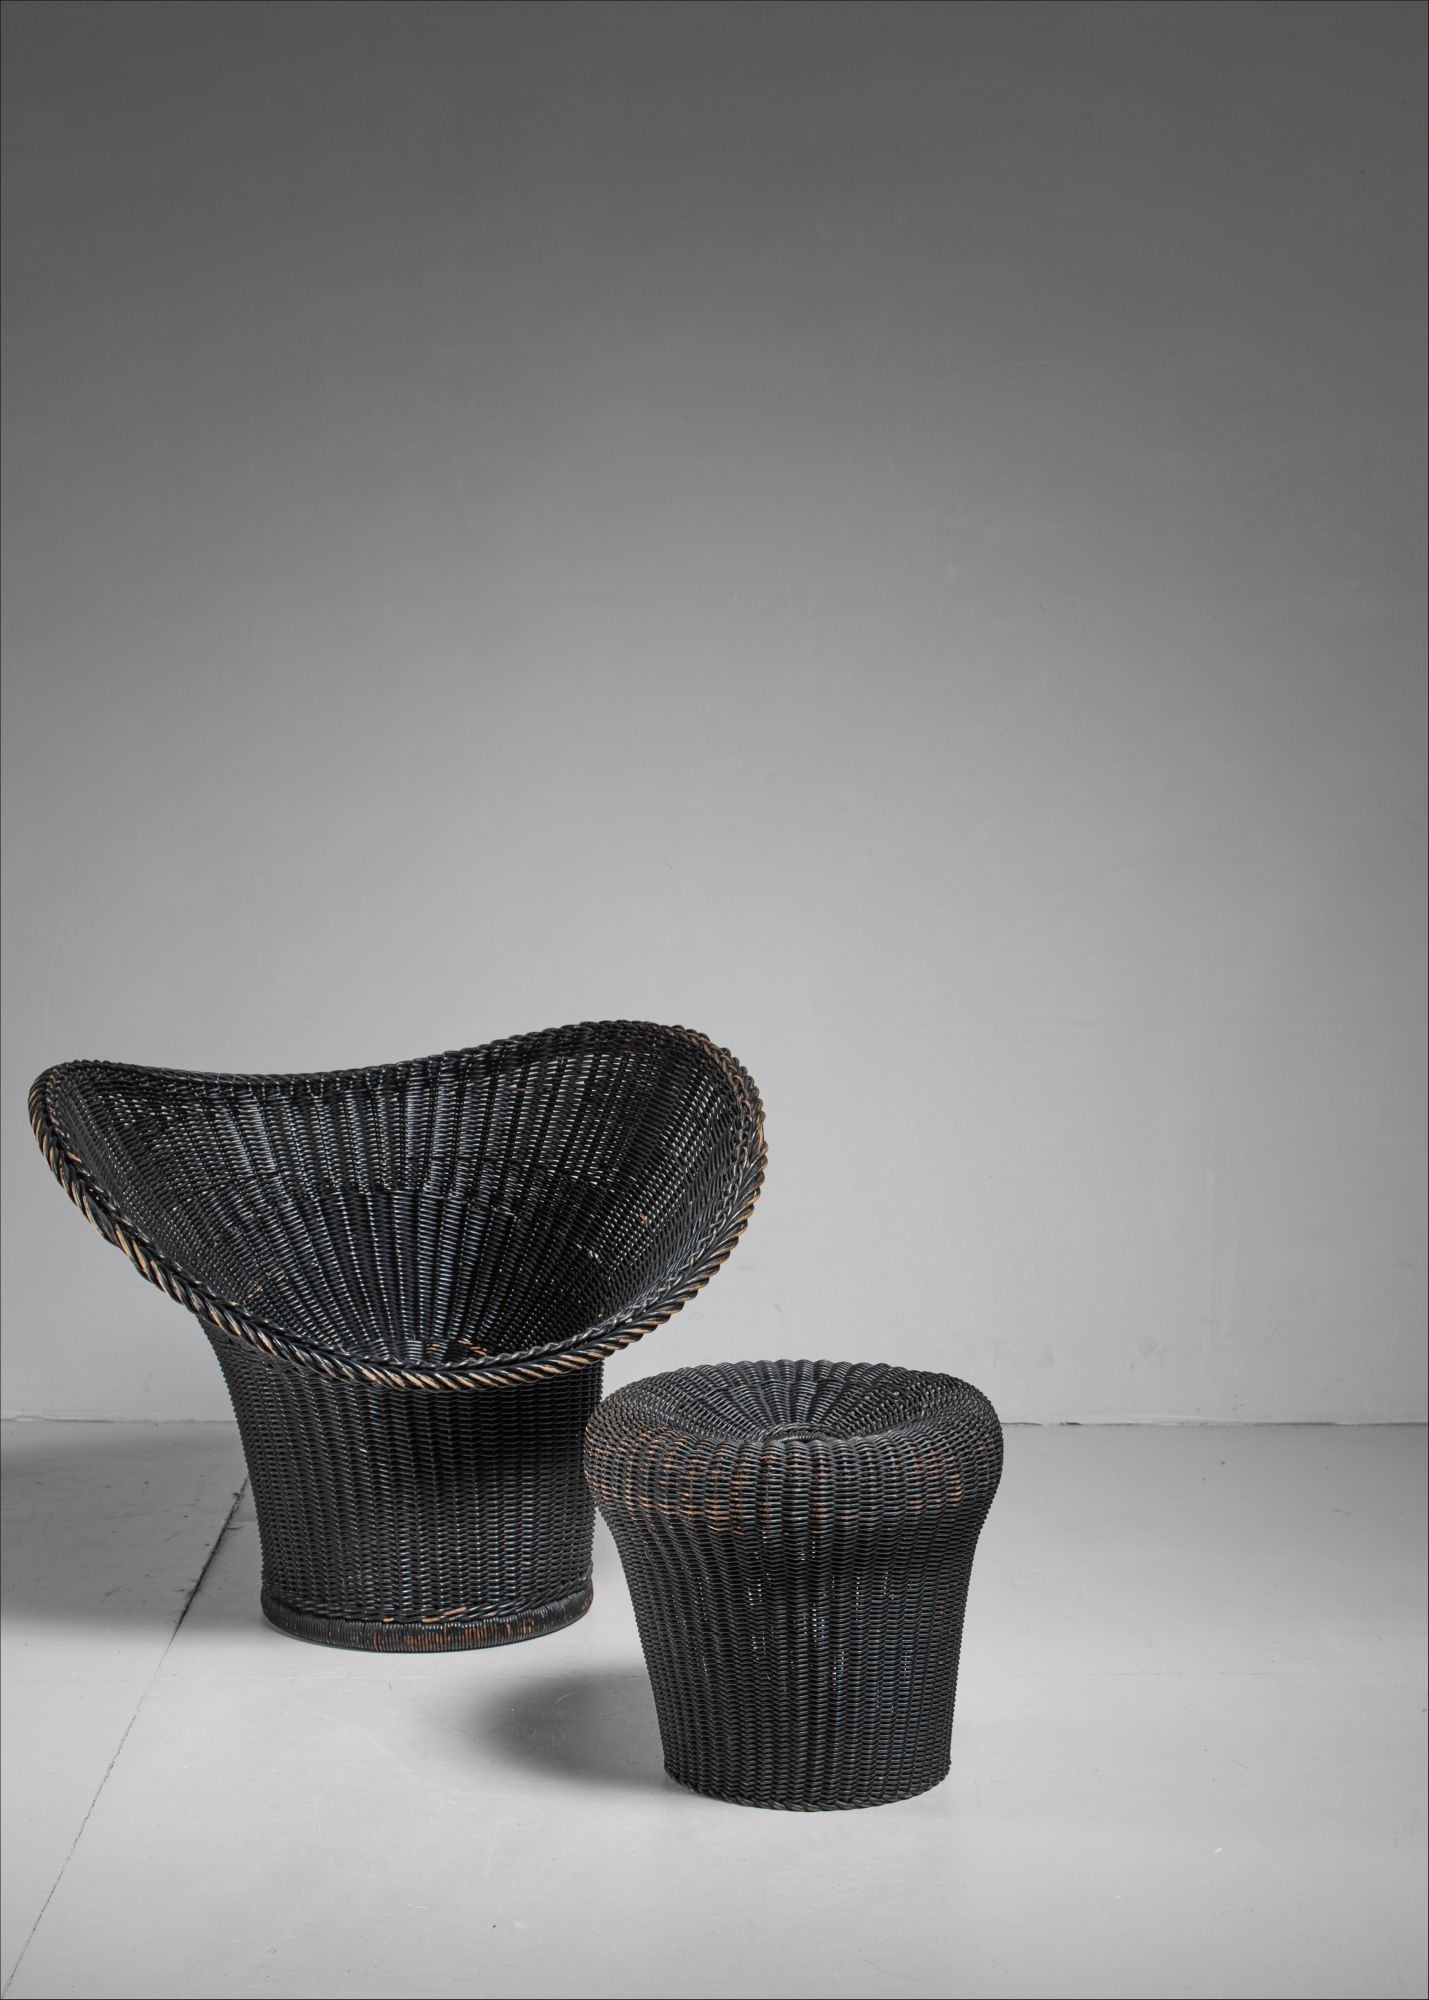 Rattan Korbsessel Egon Eiermann Korbsessel Chair And Stool Germany 1958